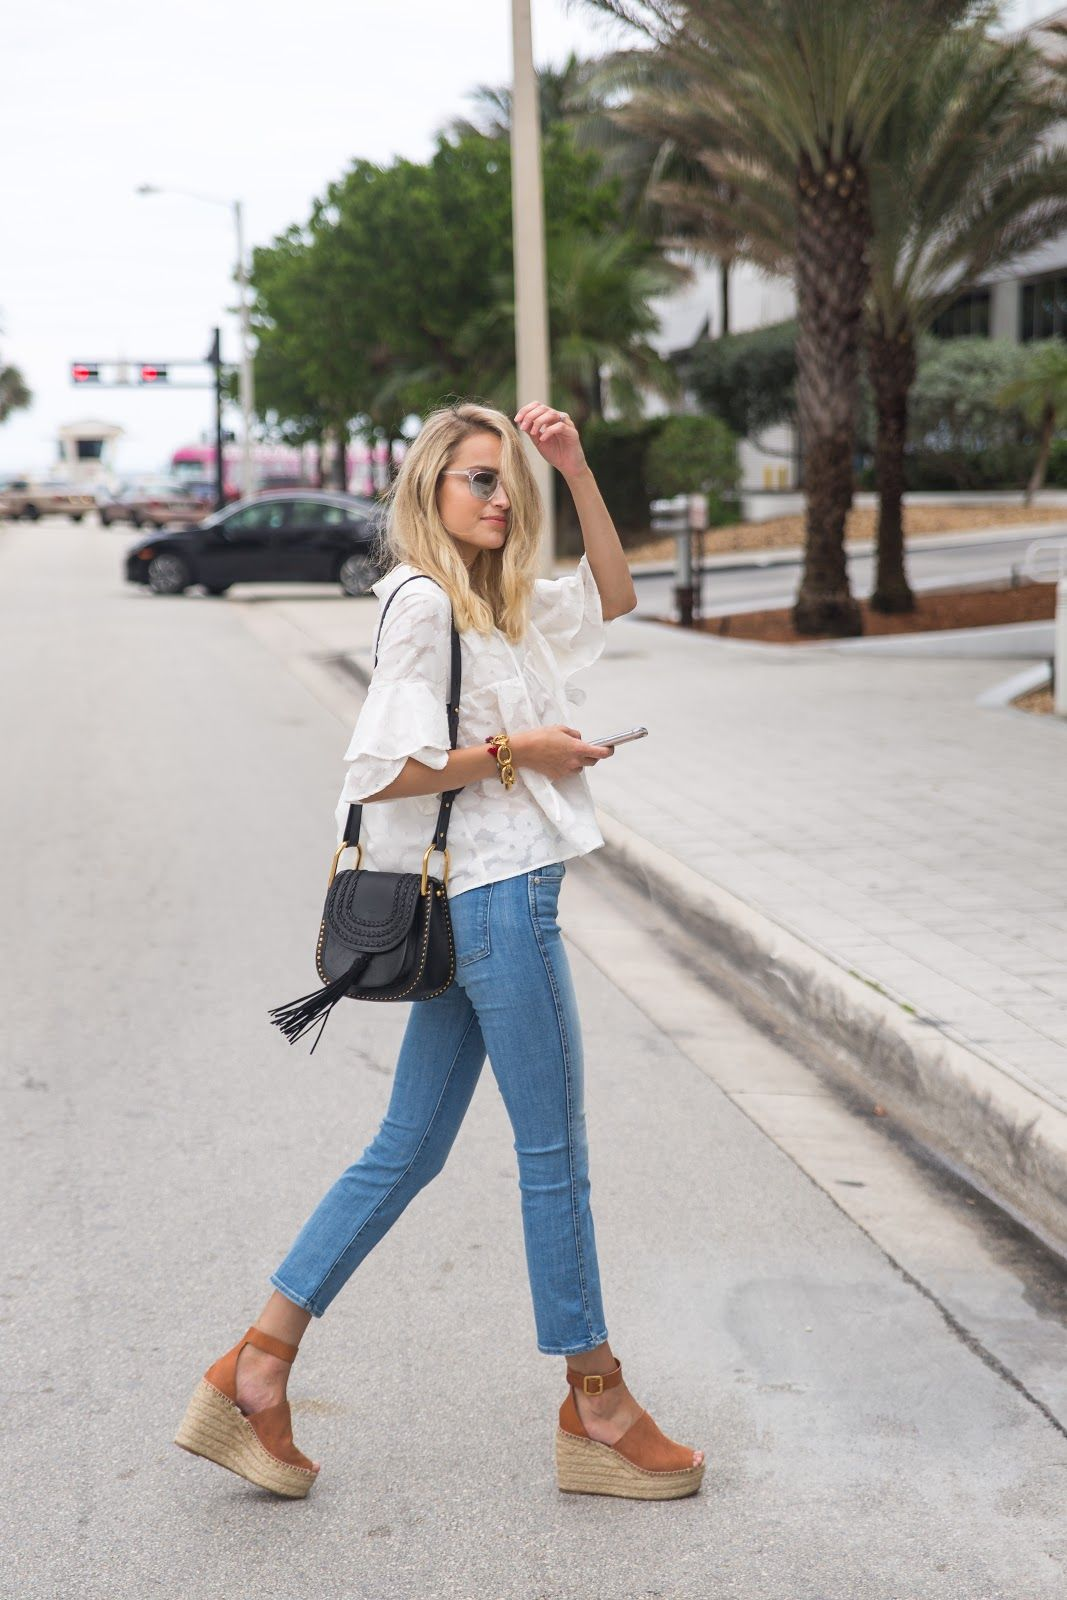 Great outfit you can throw on for brunch with friends or for a day around  town running some errands. Love the light skinny jeans dd9cc6c1747a